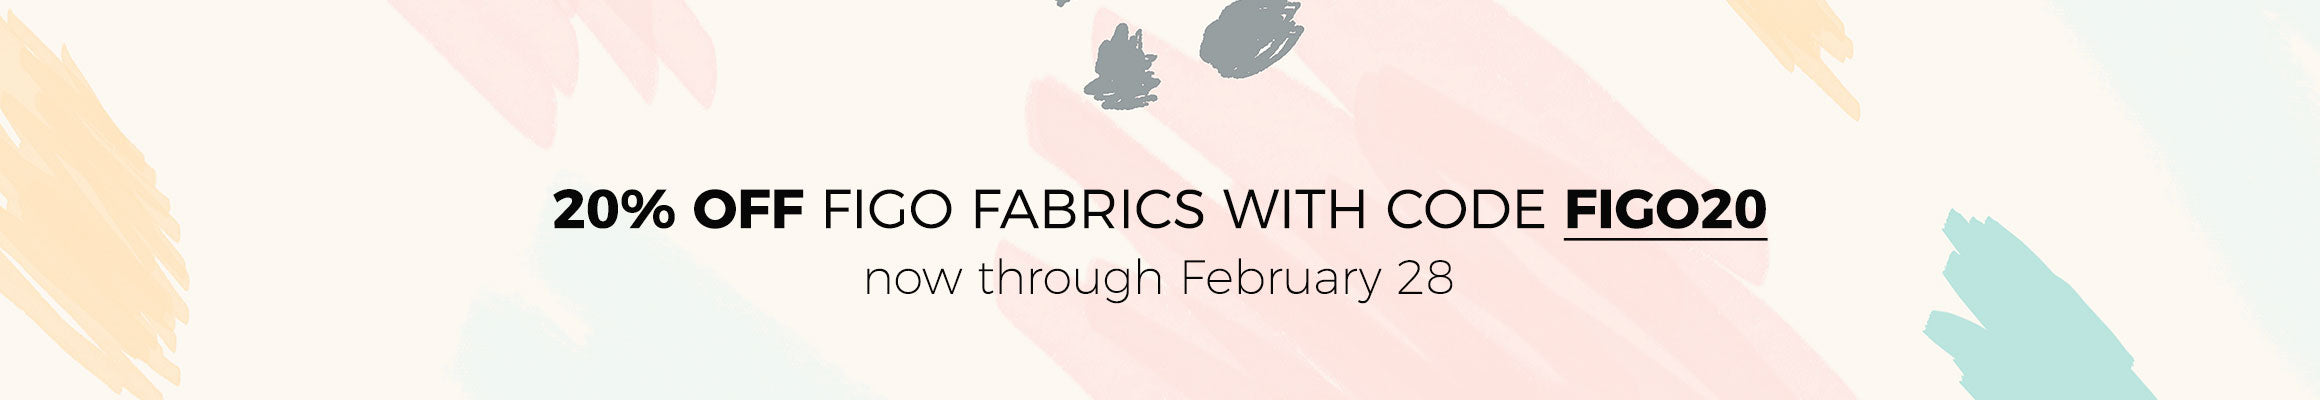 20% off in-stock prints from FIGO Fabrics with coupon code FIGO20. Now through February 28, 2019.